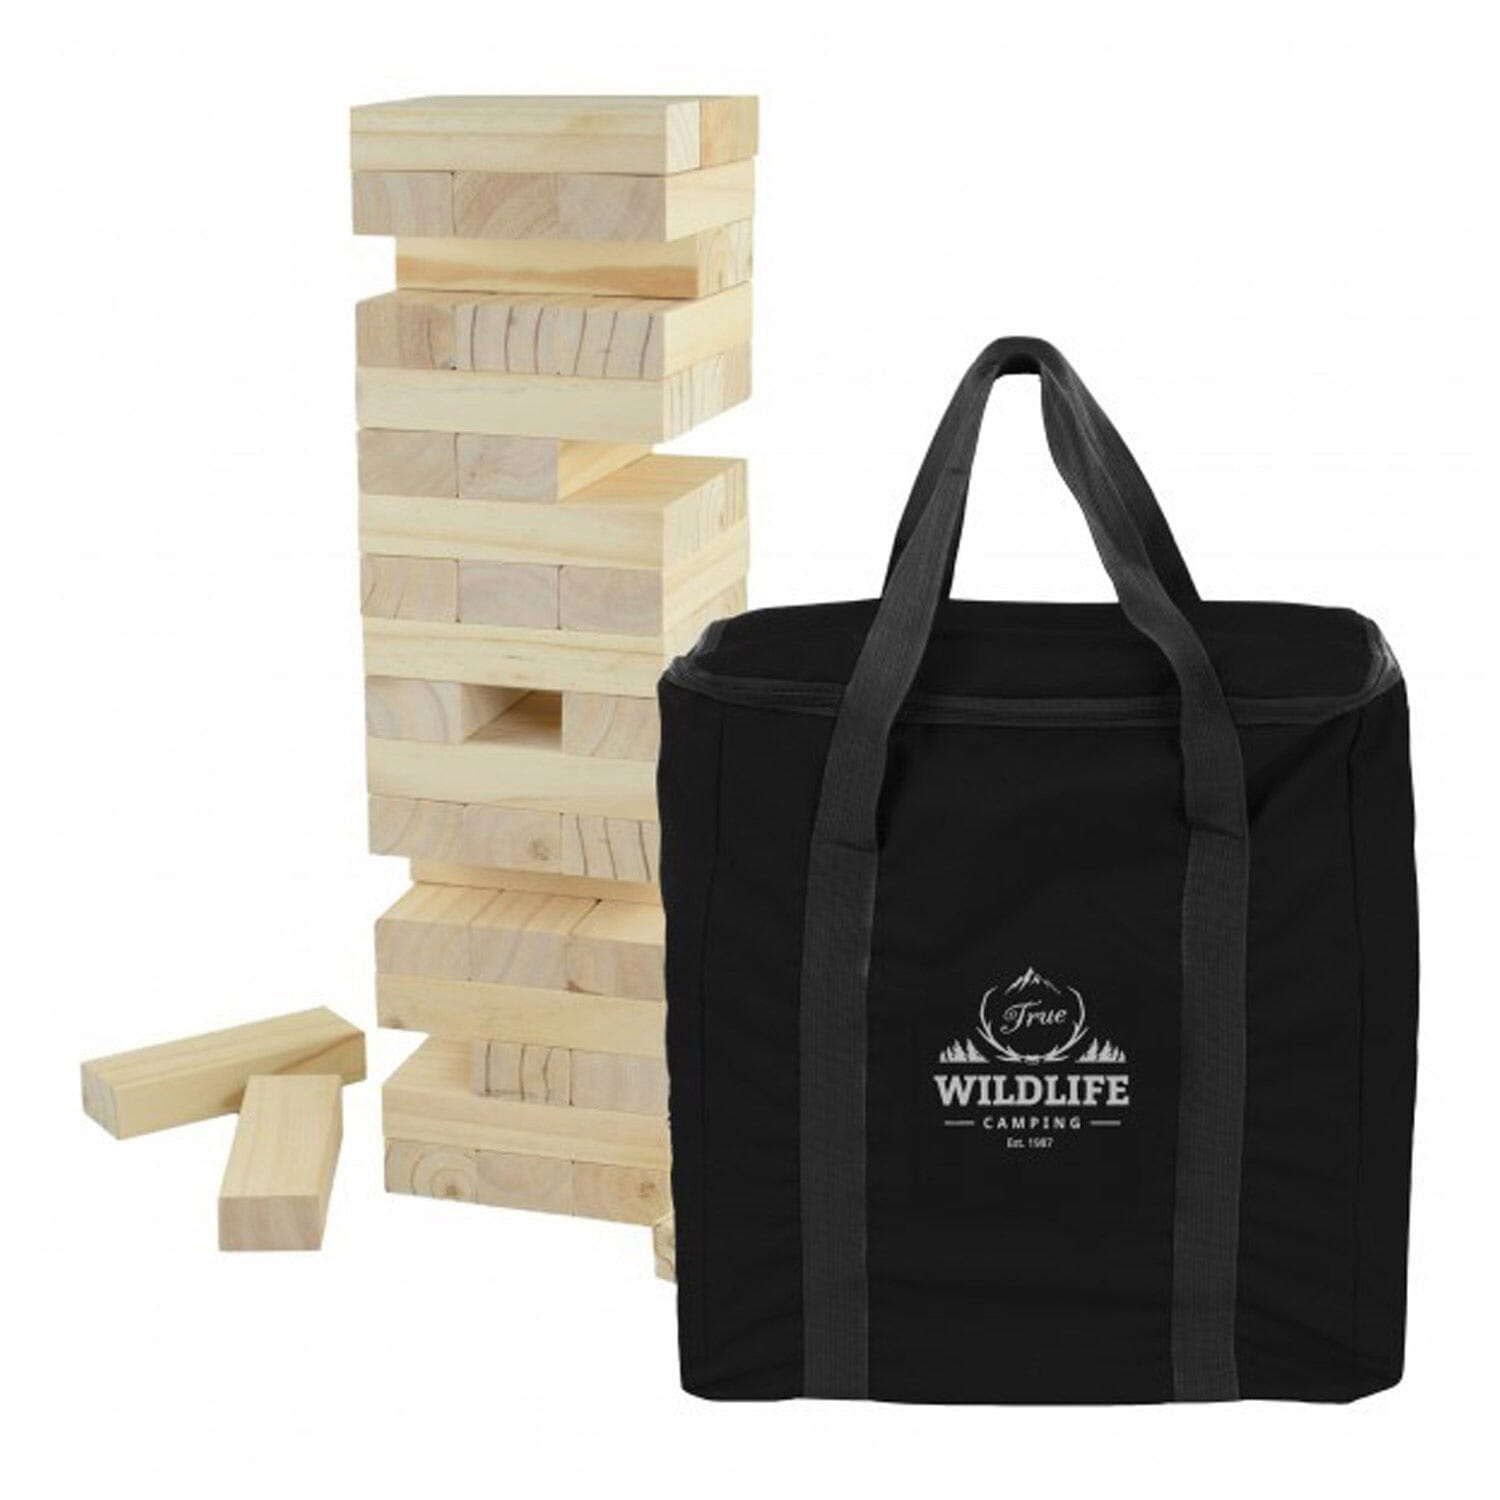 Yard wooden tumble tower game